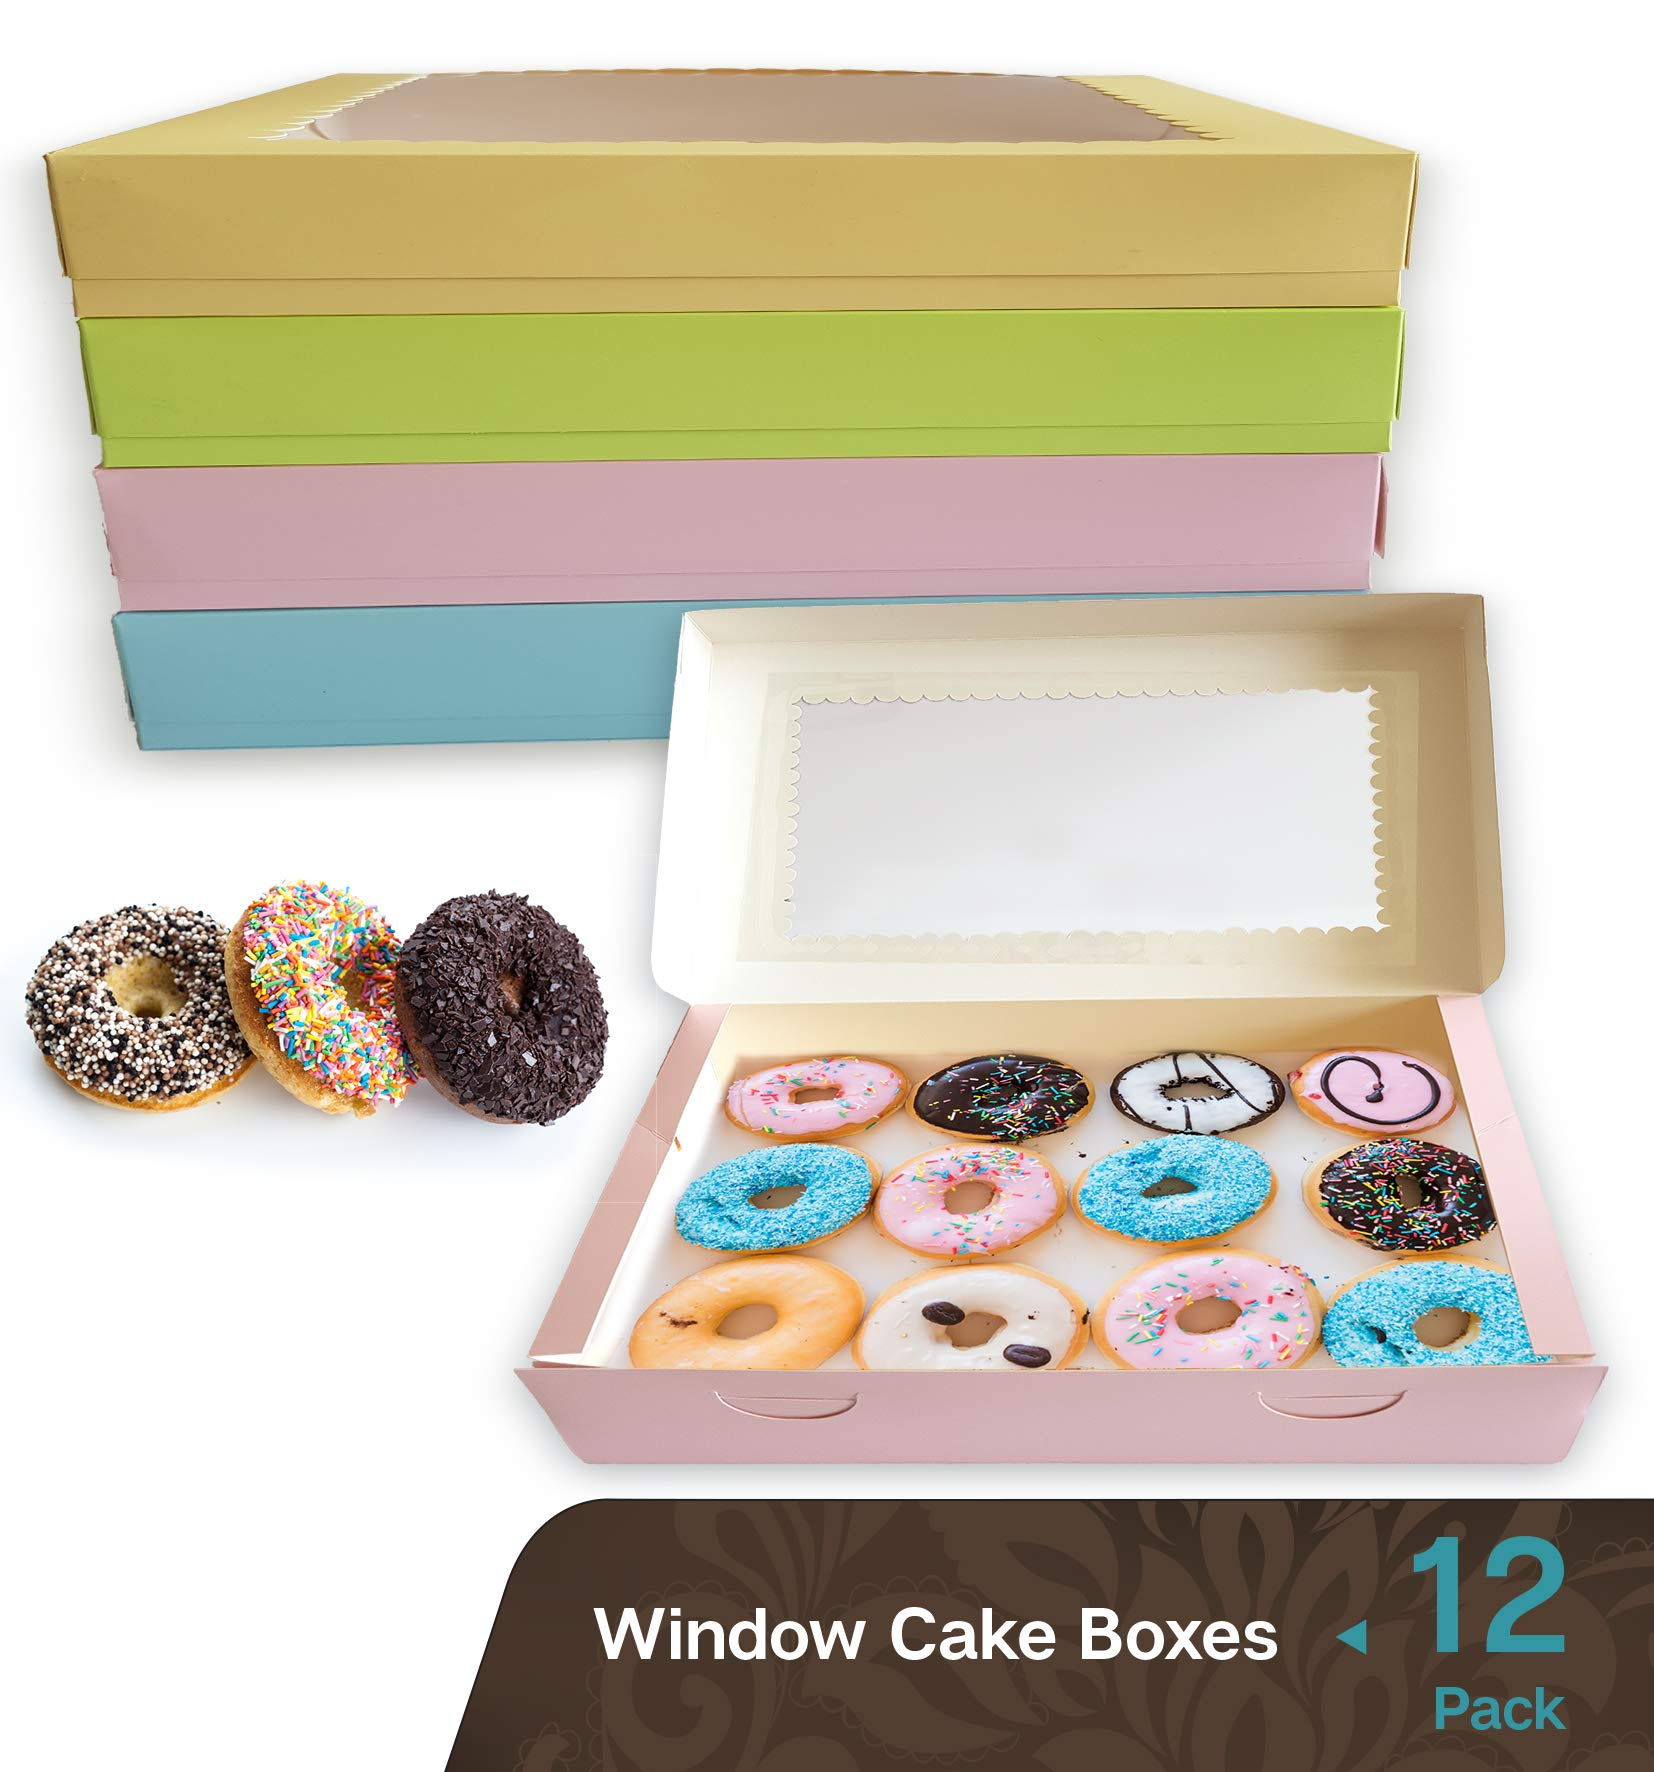 Cookeezz Couture - Donuts Boxes - Cake Boxes 16 x 12 x 2.25 Inch Heavy Duty Window Donuts Boxes Great for Bakery, Pies, Cakes, Cupcake - 12 Pack Cake Boxes at Assorted 4 Pastel Colors.